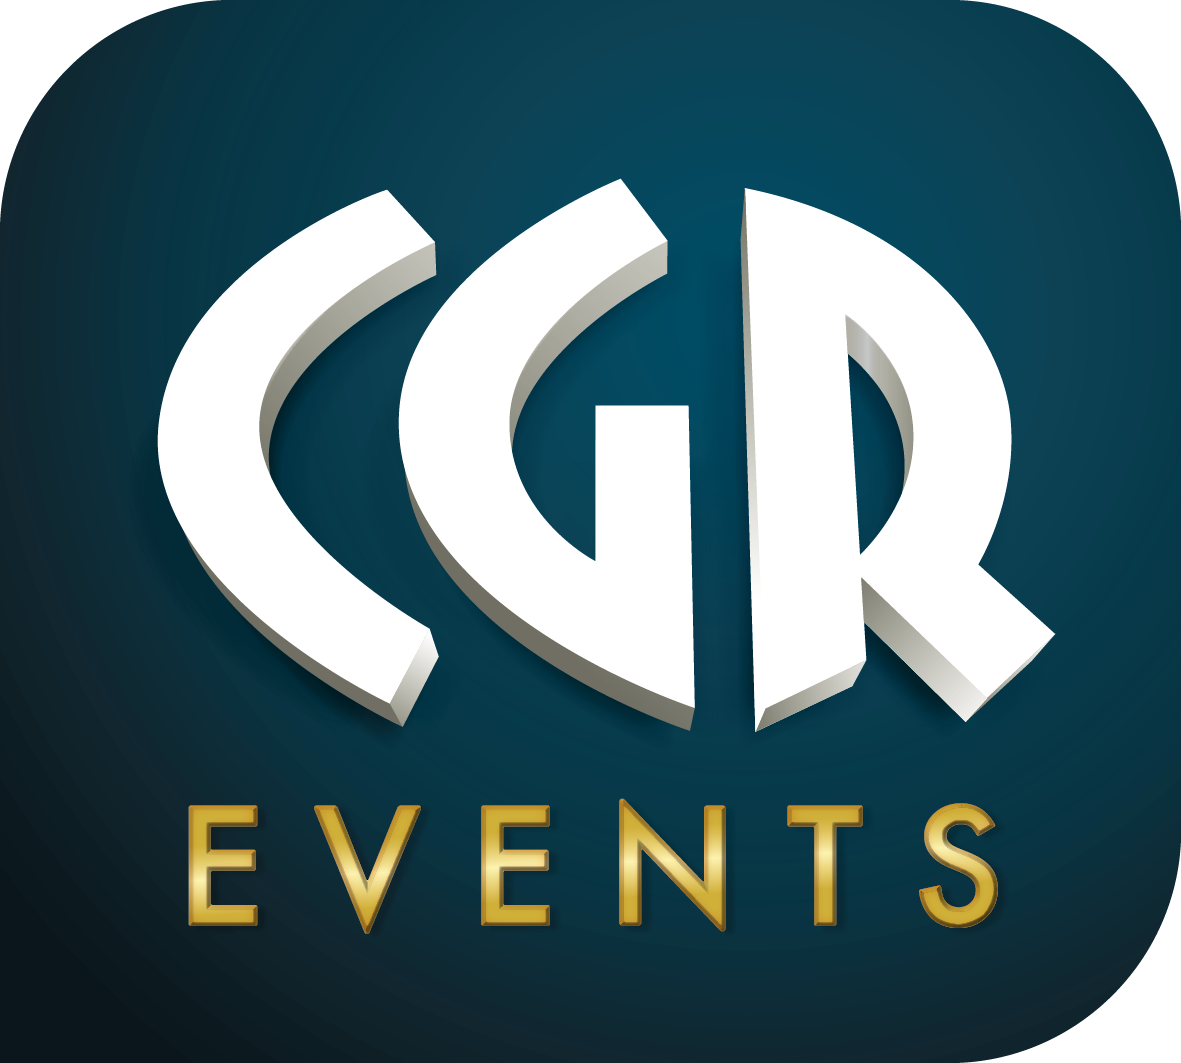 Eclair Successfully Delivers First Live Alternative Content Screening via Streaming in a Cinema, In Partnership with CGR Events